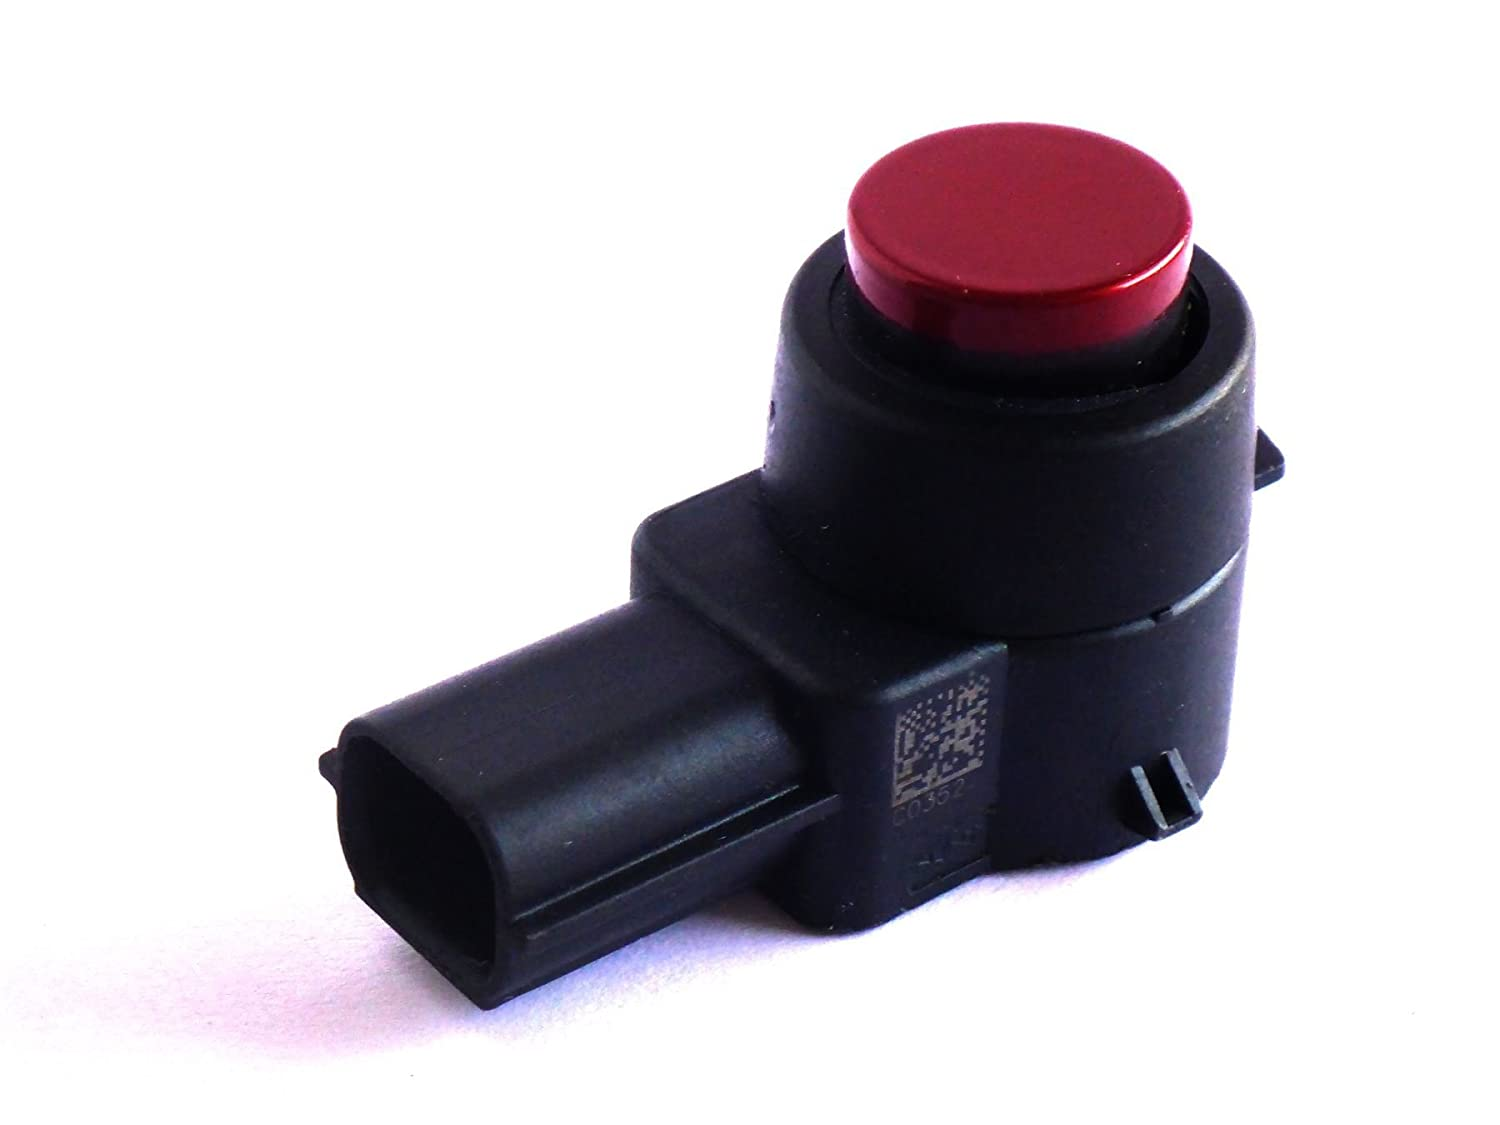 Maroon Red Ultrasonic Parking Distance Control Sensor for GM 20777093 25961321 25961316 25962147 PPN